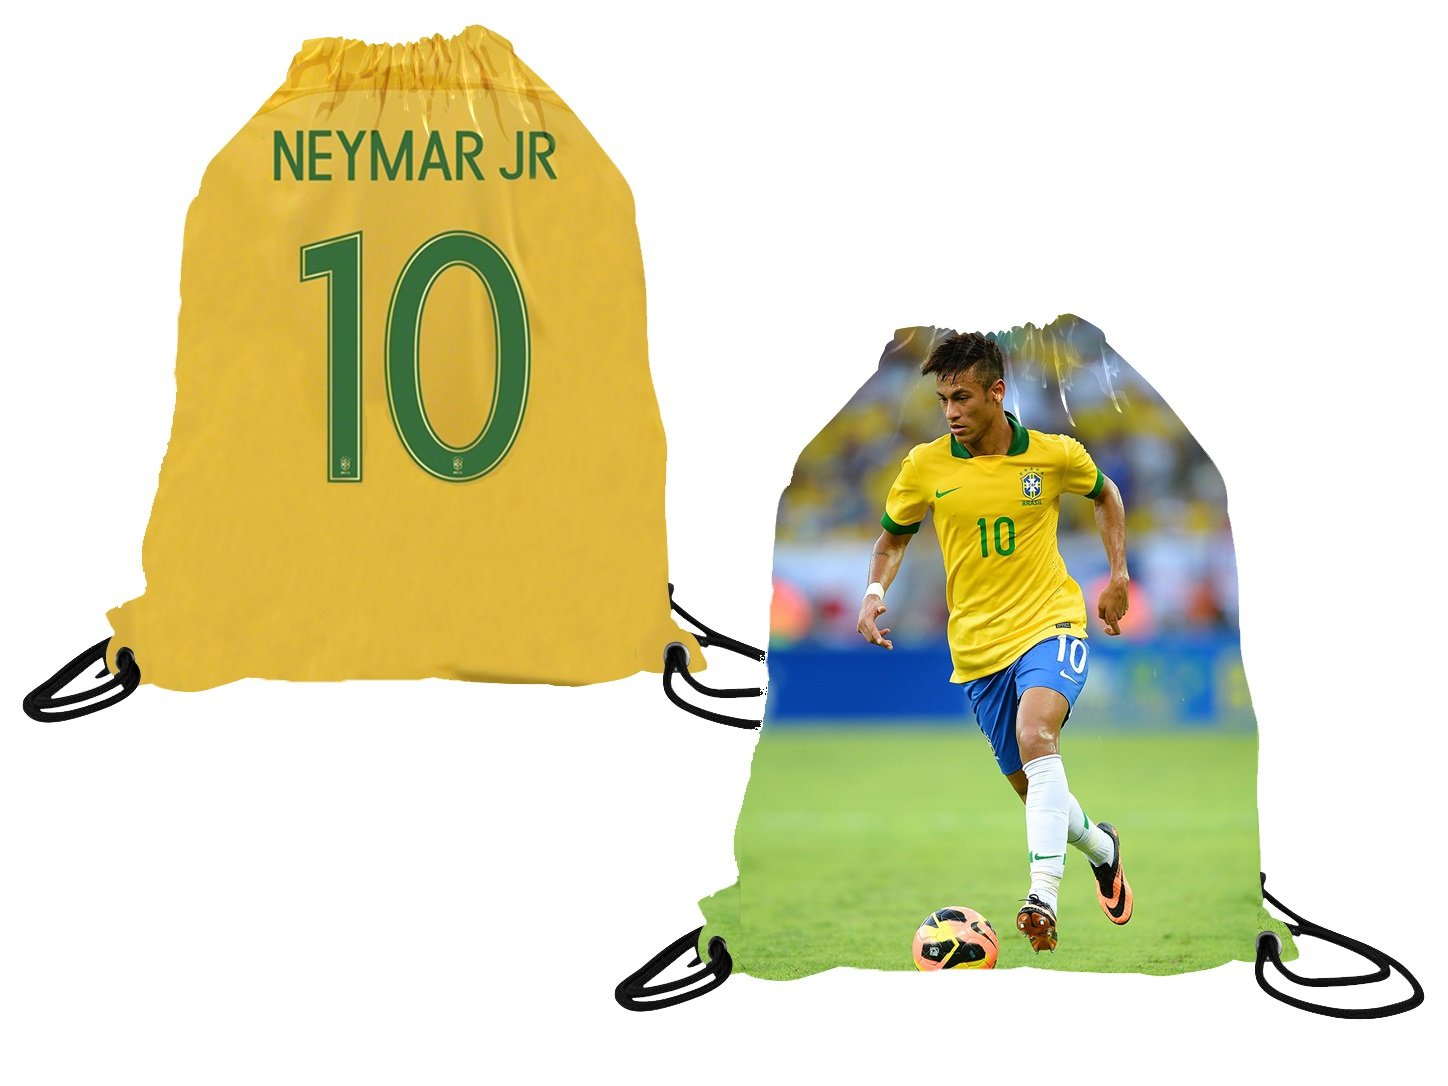 Athletics Rhinox Neymar Jersey Style T-Shirt Kids Neymar Jr Jersey Brazil T-Shirt Gift Set Youth Sizes ✓ Premium Quality ✓ Lightweight Breathable Fabric ✓ Soccer Backpack Gift Packaging